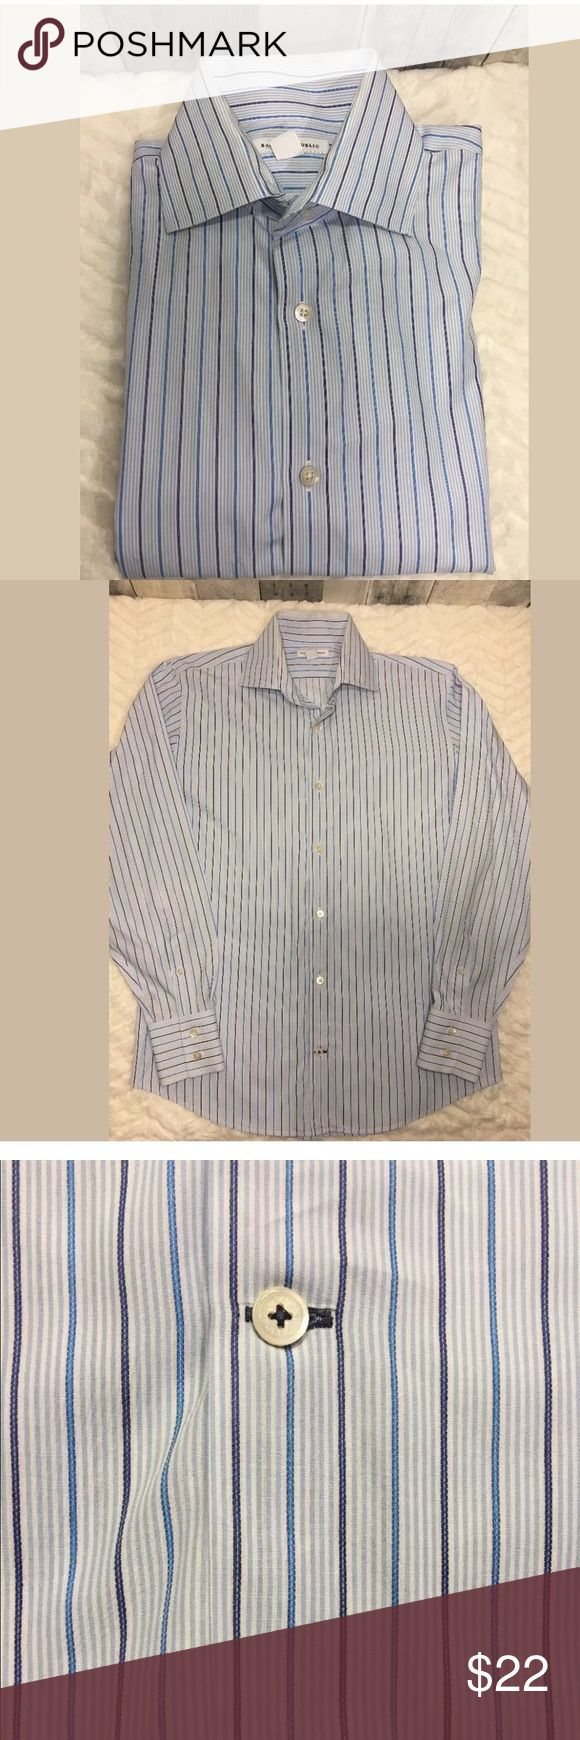 """Banana Republic Slim Fit Non Iron Dress Shirt Banana Republic Slim Fit Non Iron Dress Shirt Sz M 15-15 1/ 2 White Blue Striped Dress shirt is in excellent condition with no FLAWS! In new condition. Armpit to armpit: 22.5"""" Length: 29""""  ***I have other Banana Republic dress shirts listed if interested.  Thanks for looking! Banana Republic Shirts Dress Shirts"""